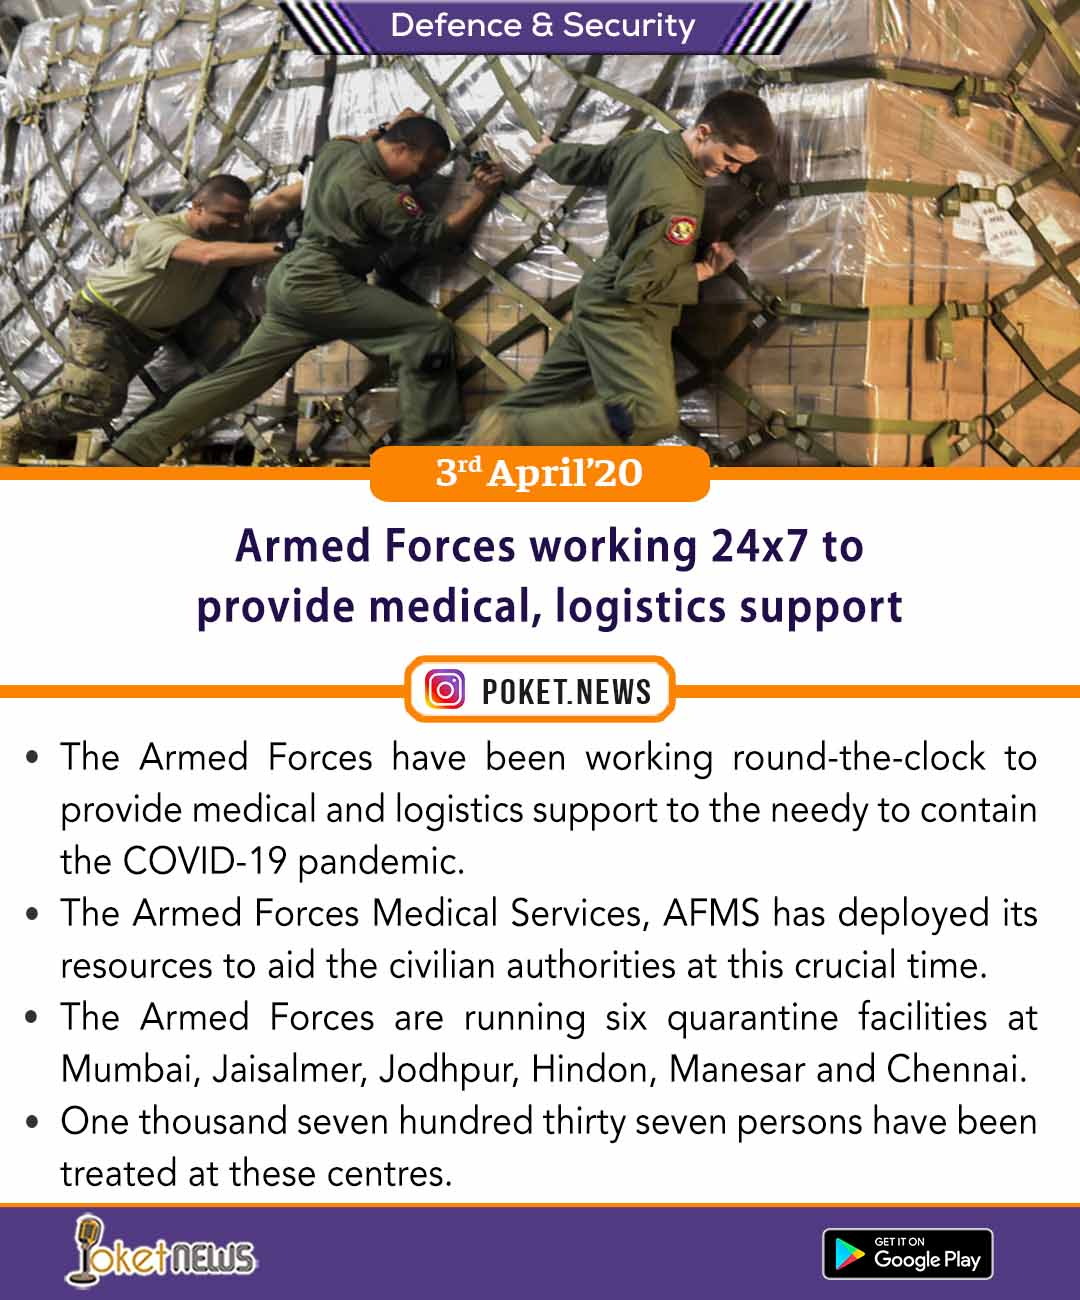 Armed Forces working 24x7 to provide medical, logistics support